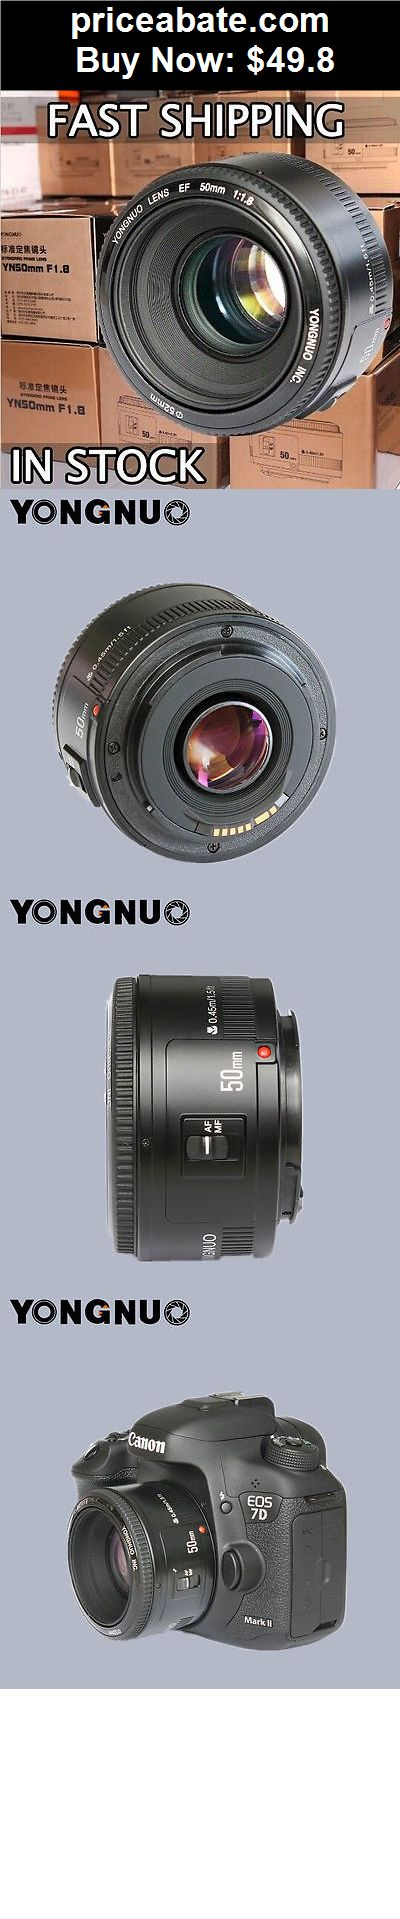 Camera-And-Photo: Yongnuo YN50mm F/1.8 Standard Prime Lens for Canon EOS Rebel Camera ,AF/MF - BUY IT NOW ONLY $49.8